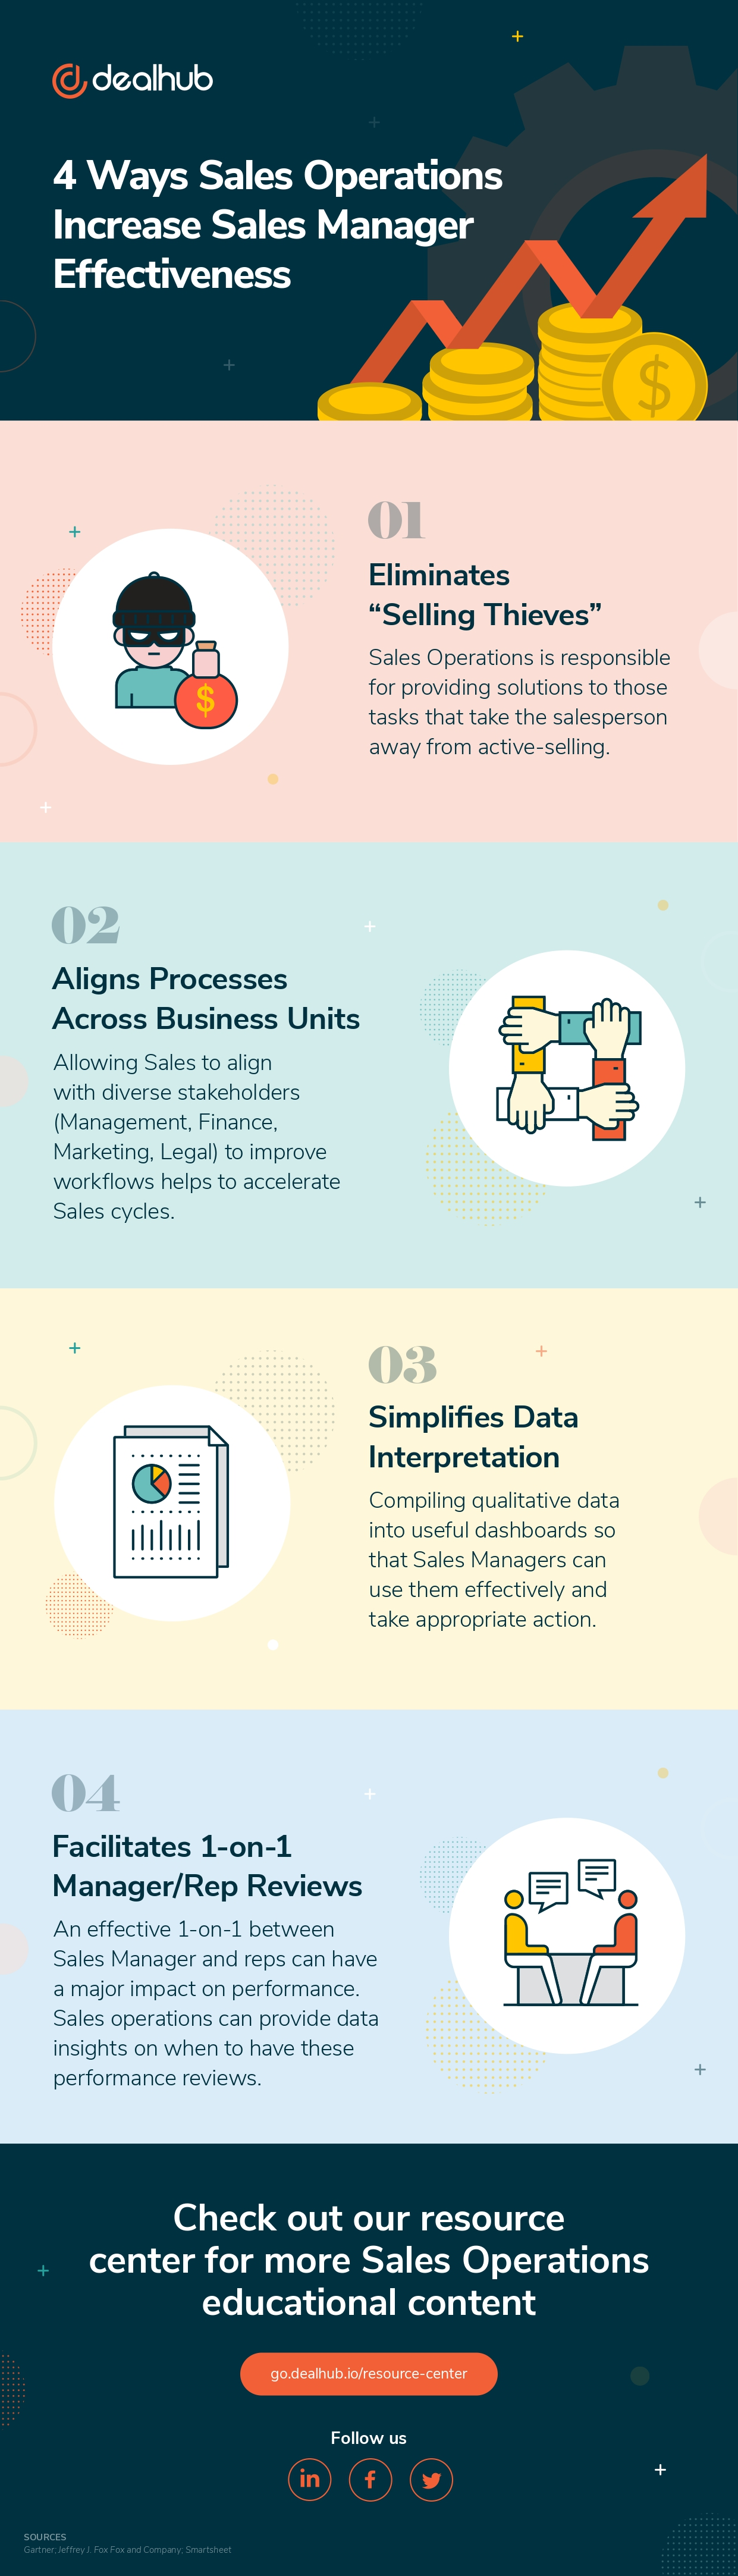 4 Ways Sales Operations Increase Sales Manager Effectiveness_page-0001